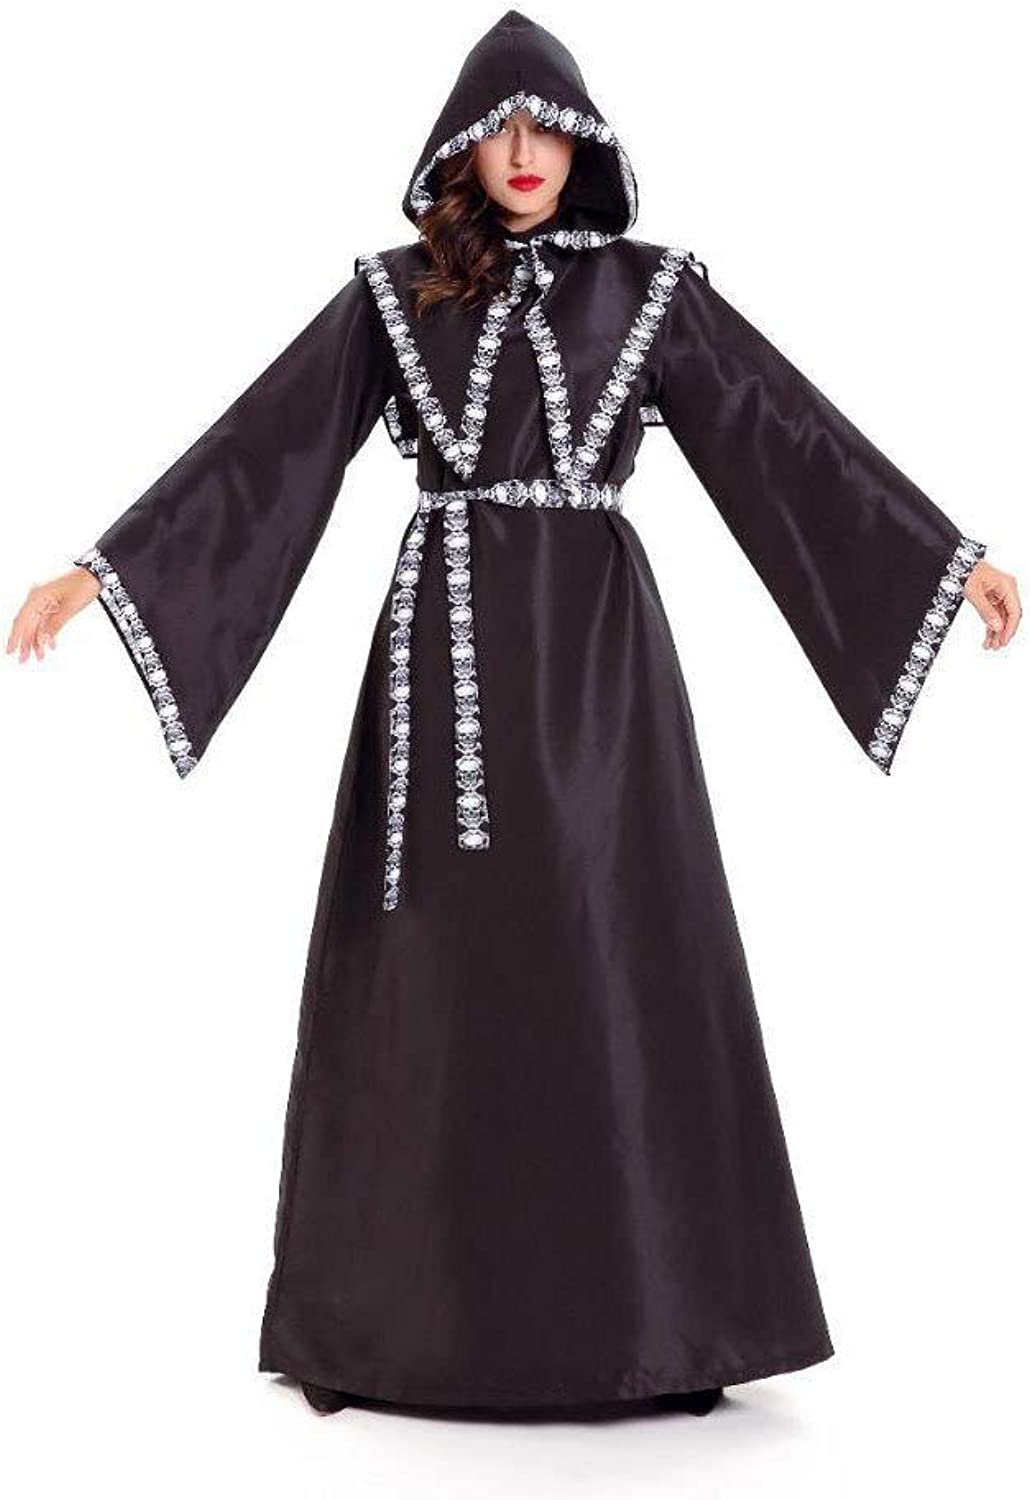 Yunfeng Witch Costume Long Hooded Witch Demon Halloween Night Ghost Game Costume